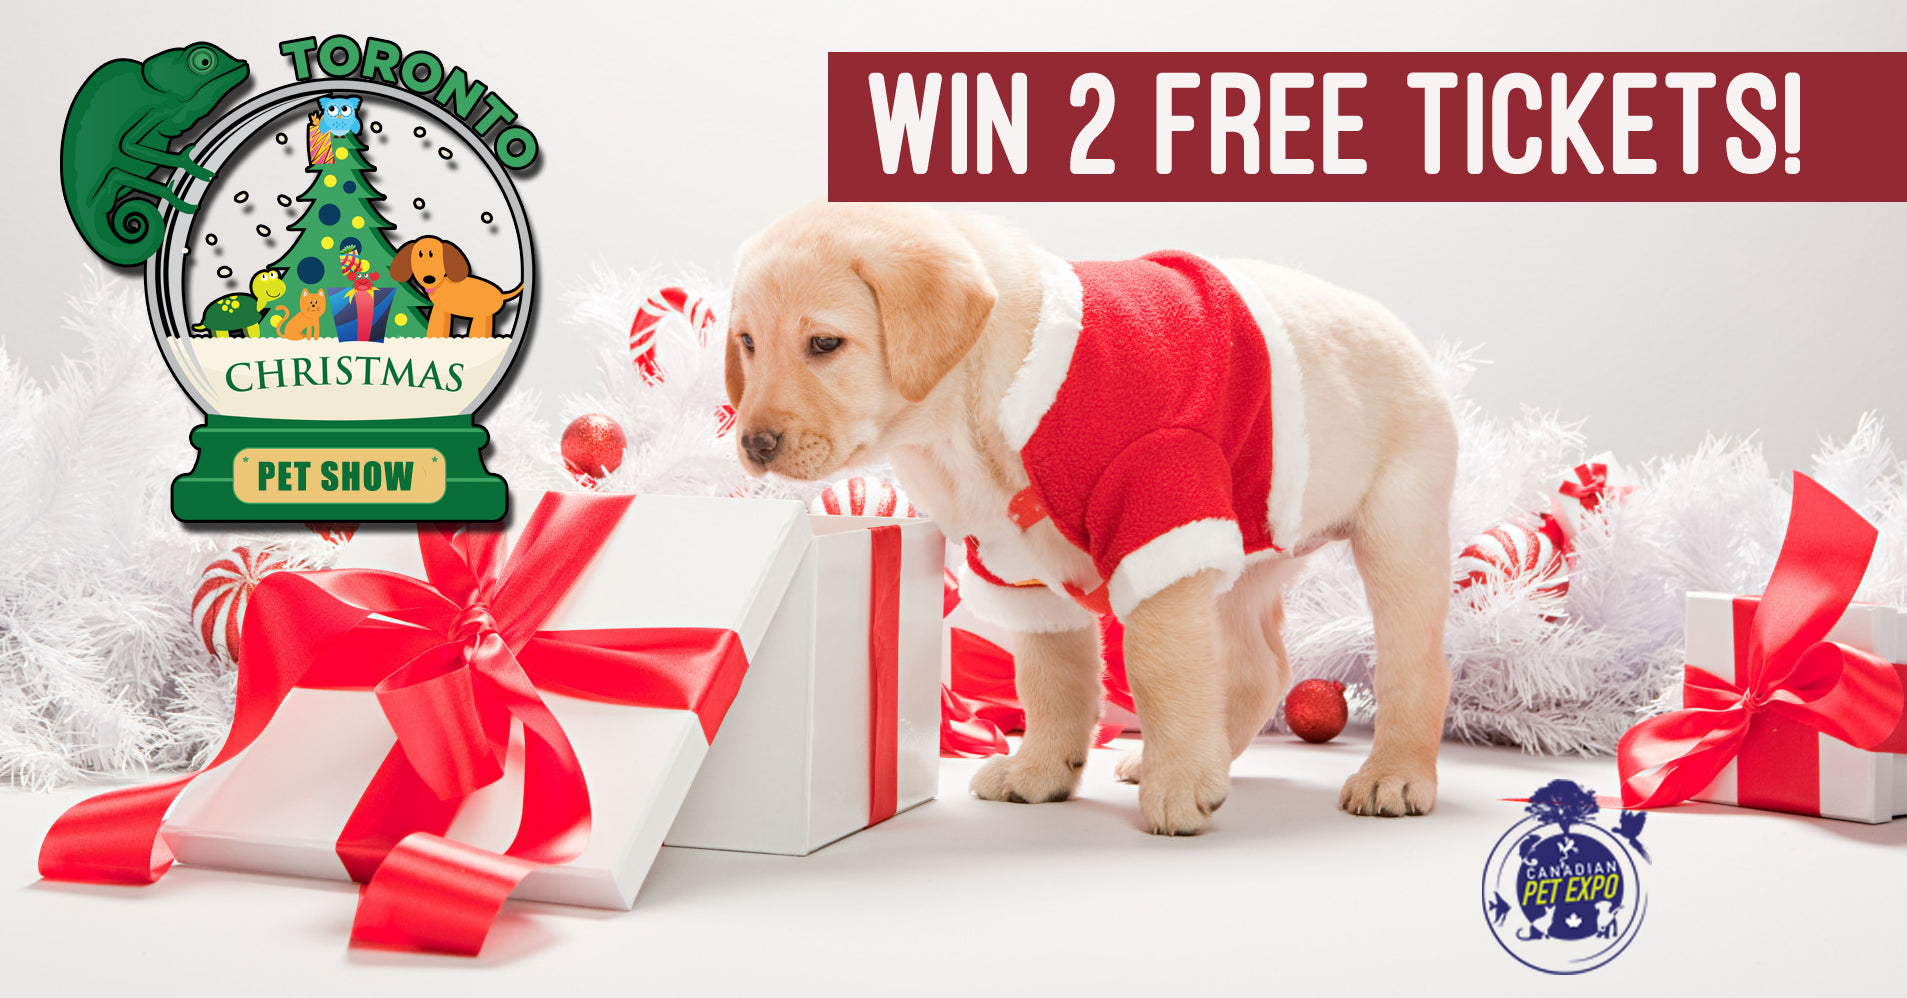 Win one of three pairs of tickets to the Christmas Canadian Pet Expo in Toronto - Treats Happen